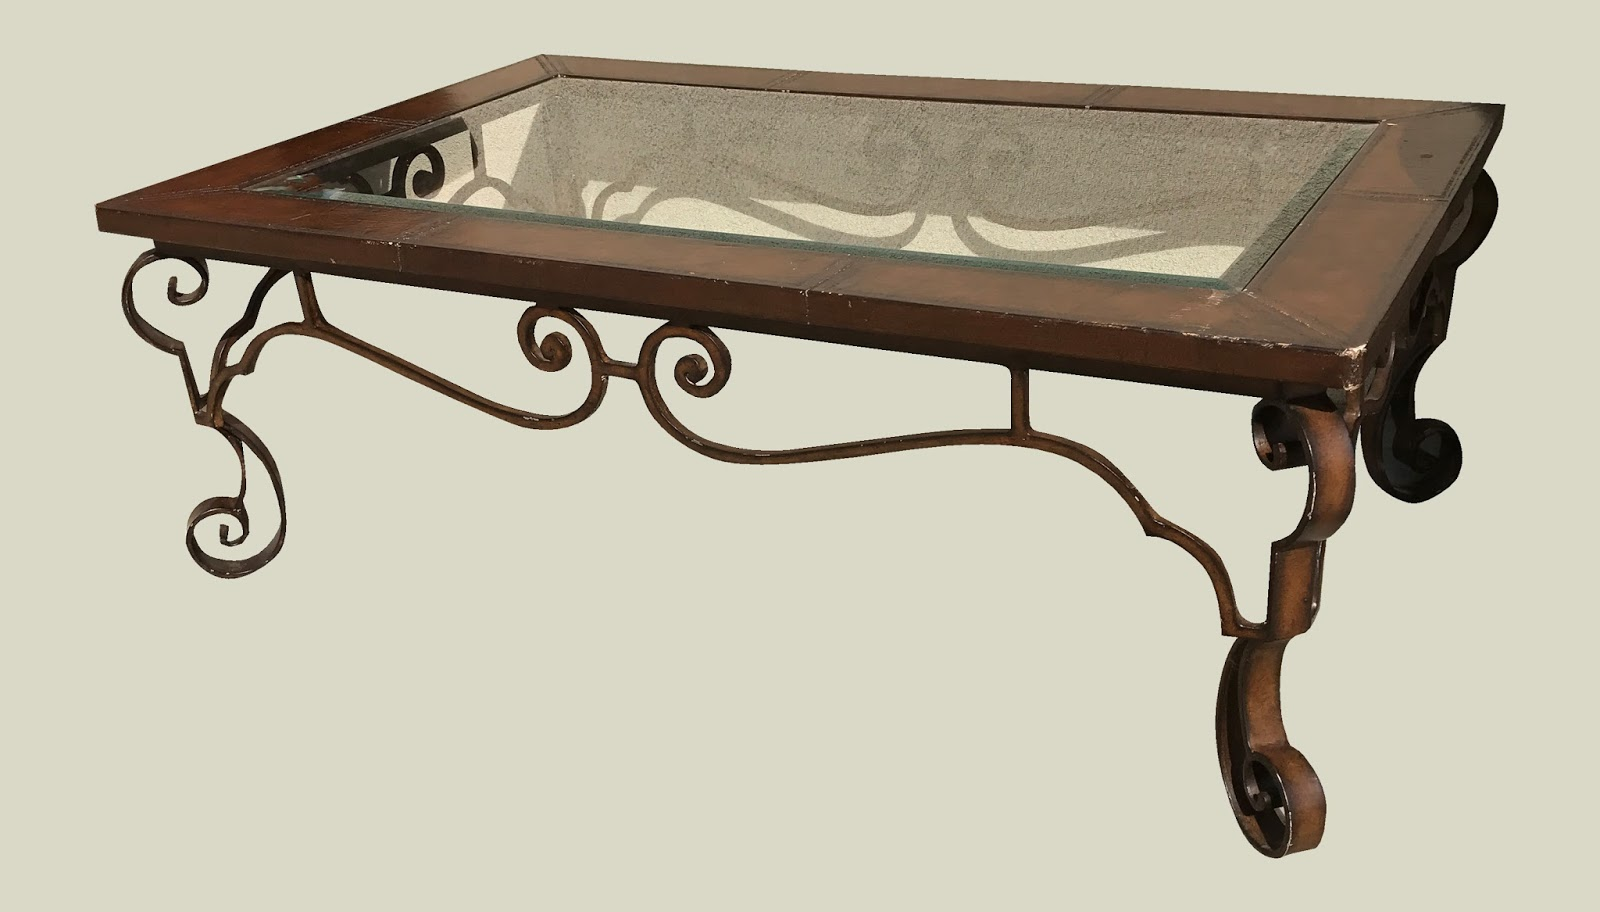 Uhuru Furniture Collectibles Cast Iron Coffee Table With Glass Top Leather Trim 125 Sold